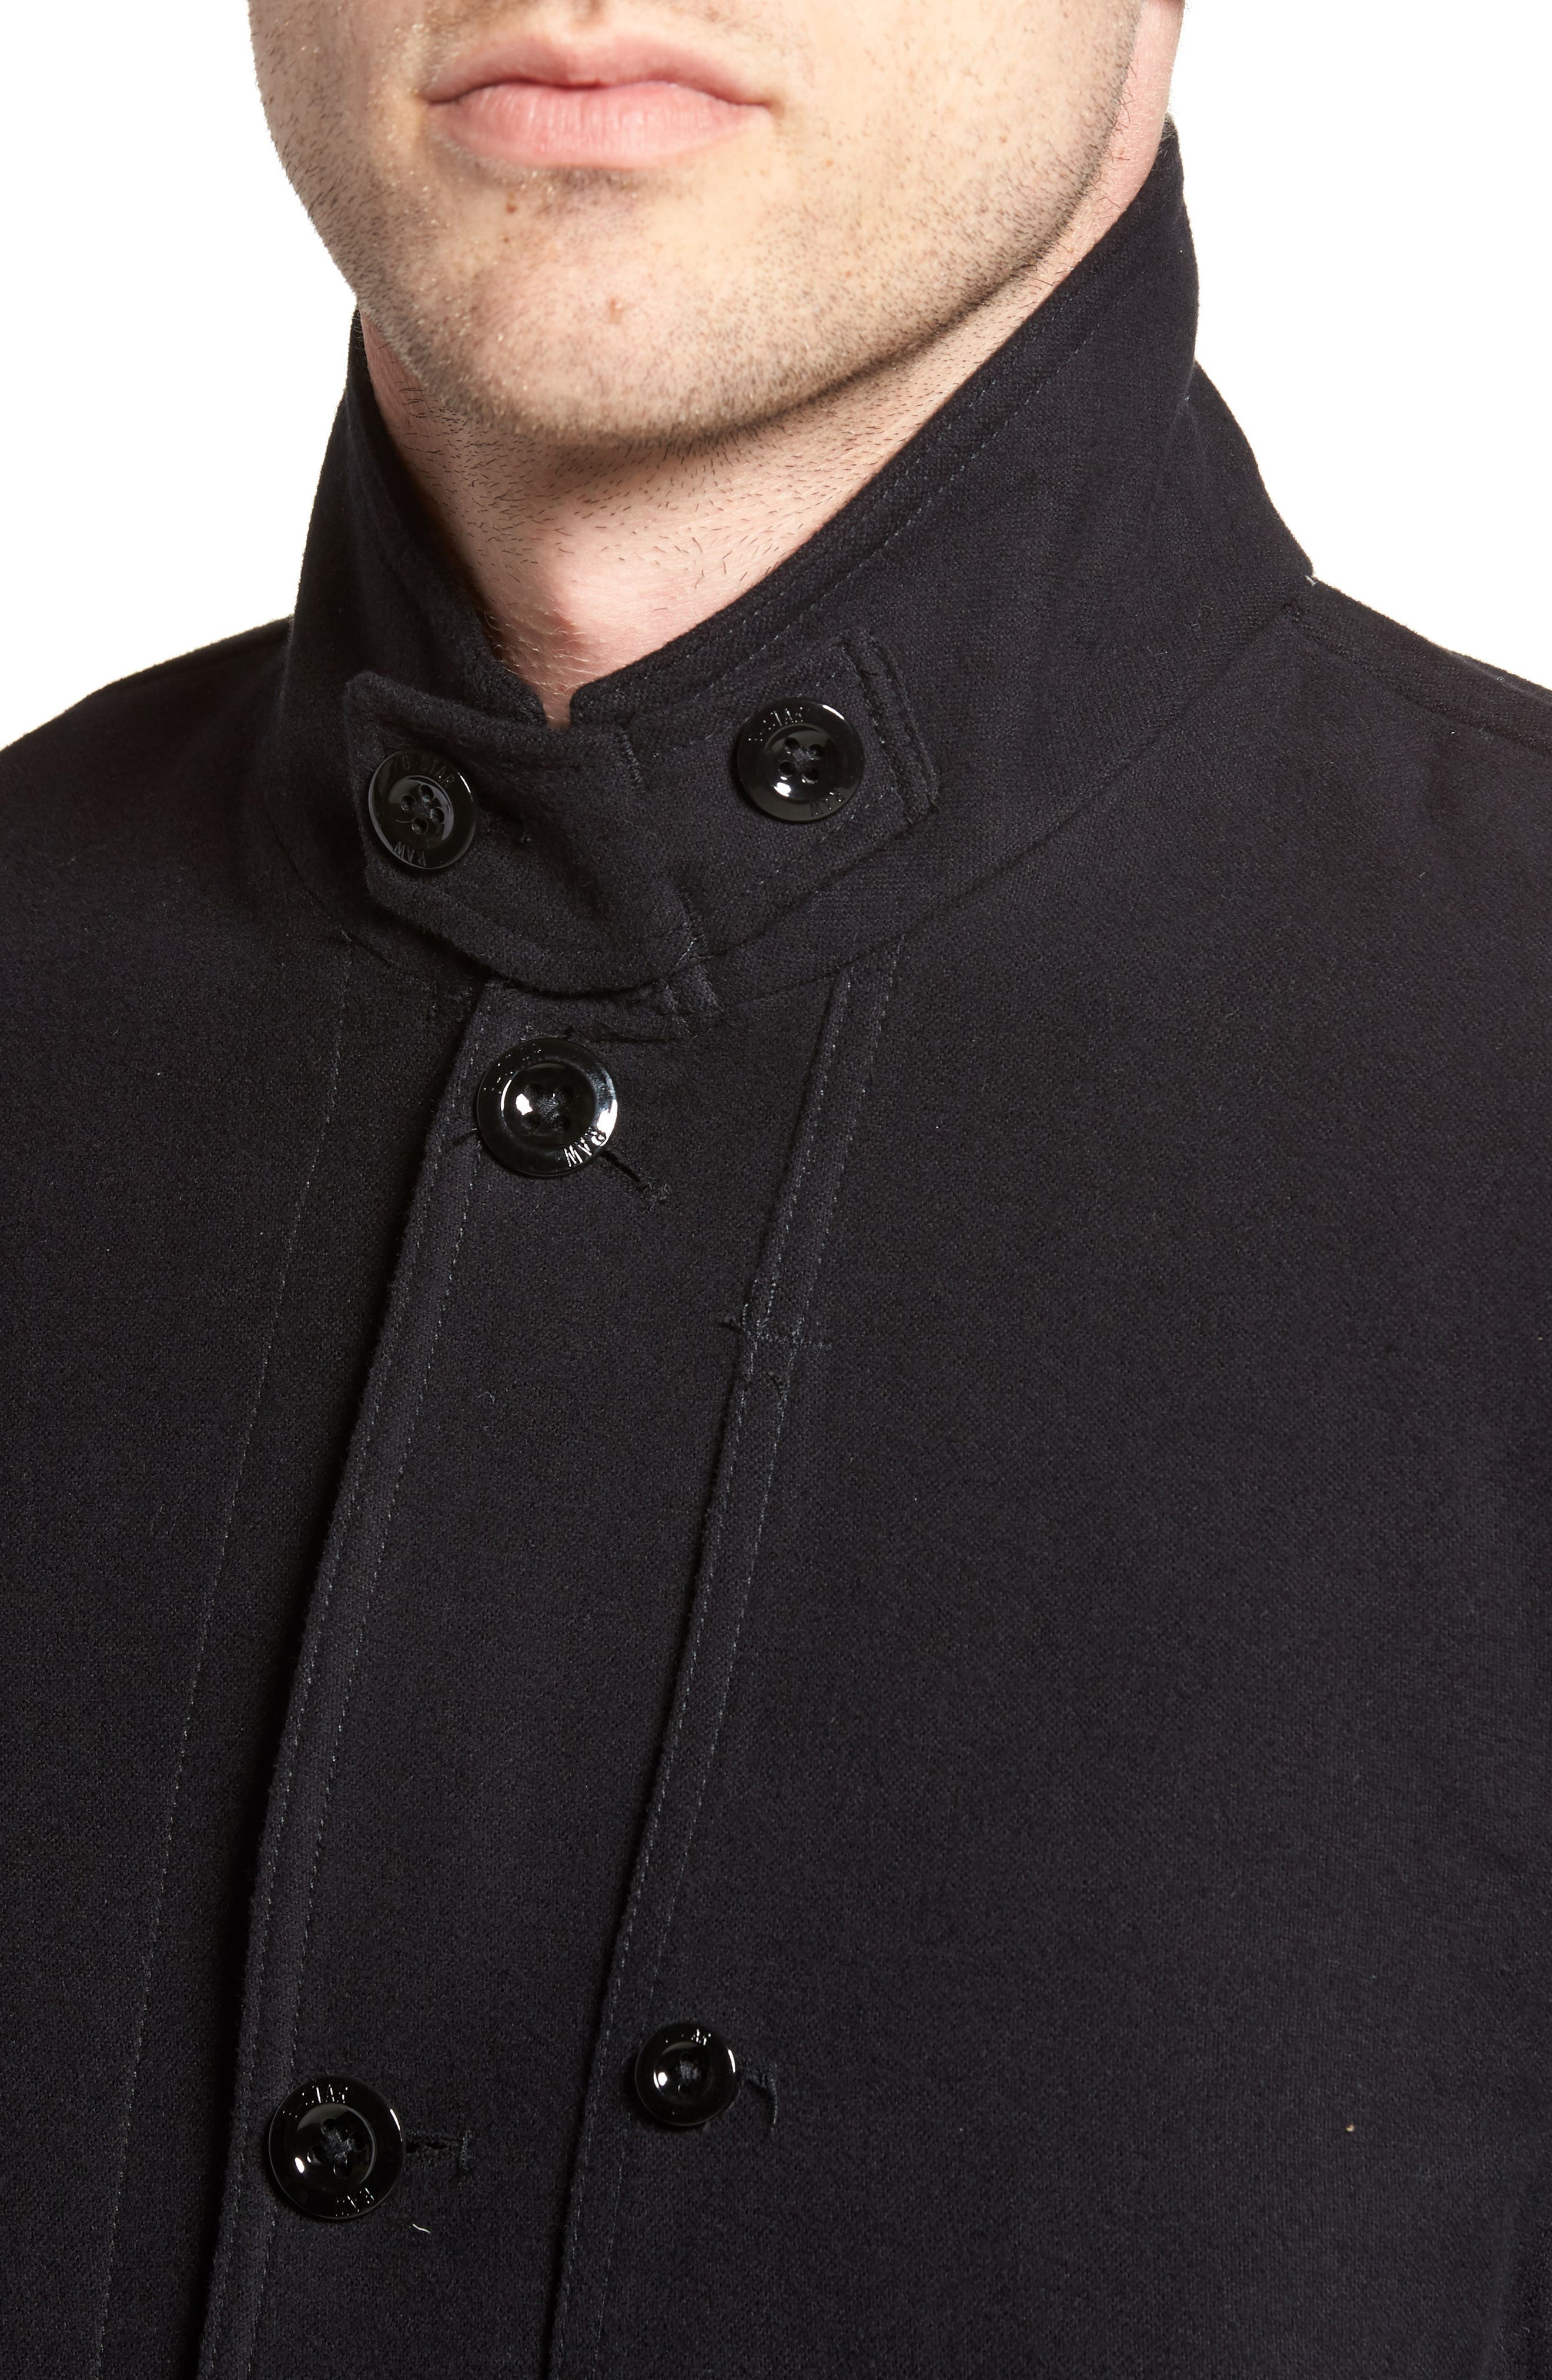 Bronson Worker Blazer,                             Alternate thumbnail 4, color,                             Black